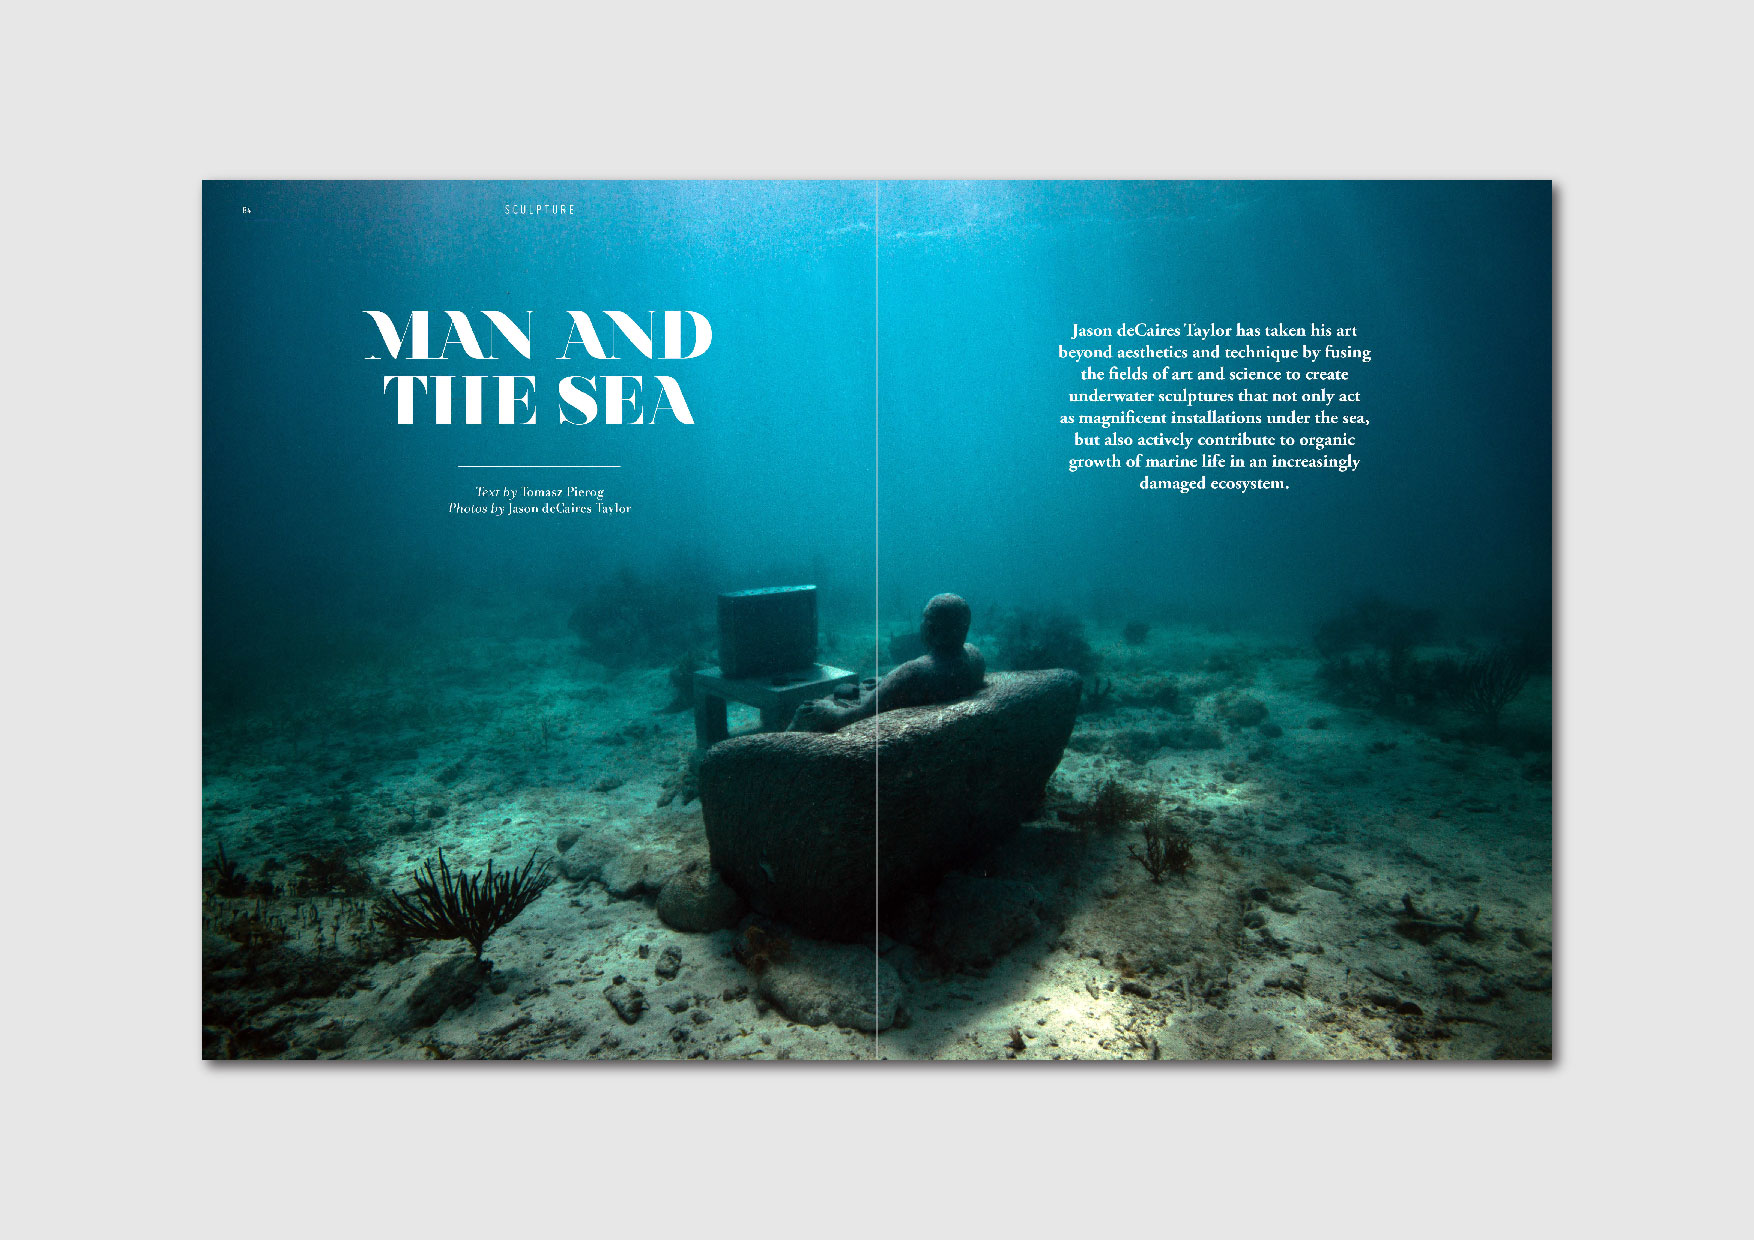 Man and the Sea: into the fascinating underwater art world of Jason deCaires Taylor